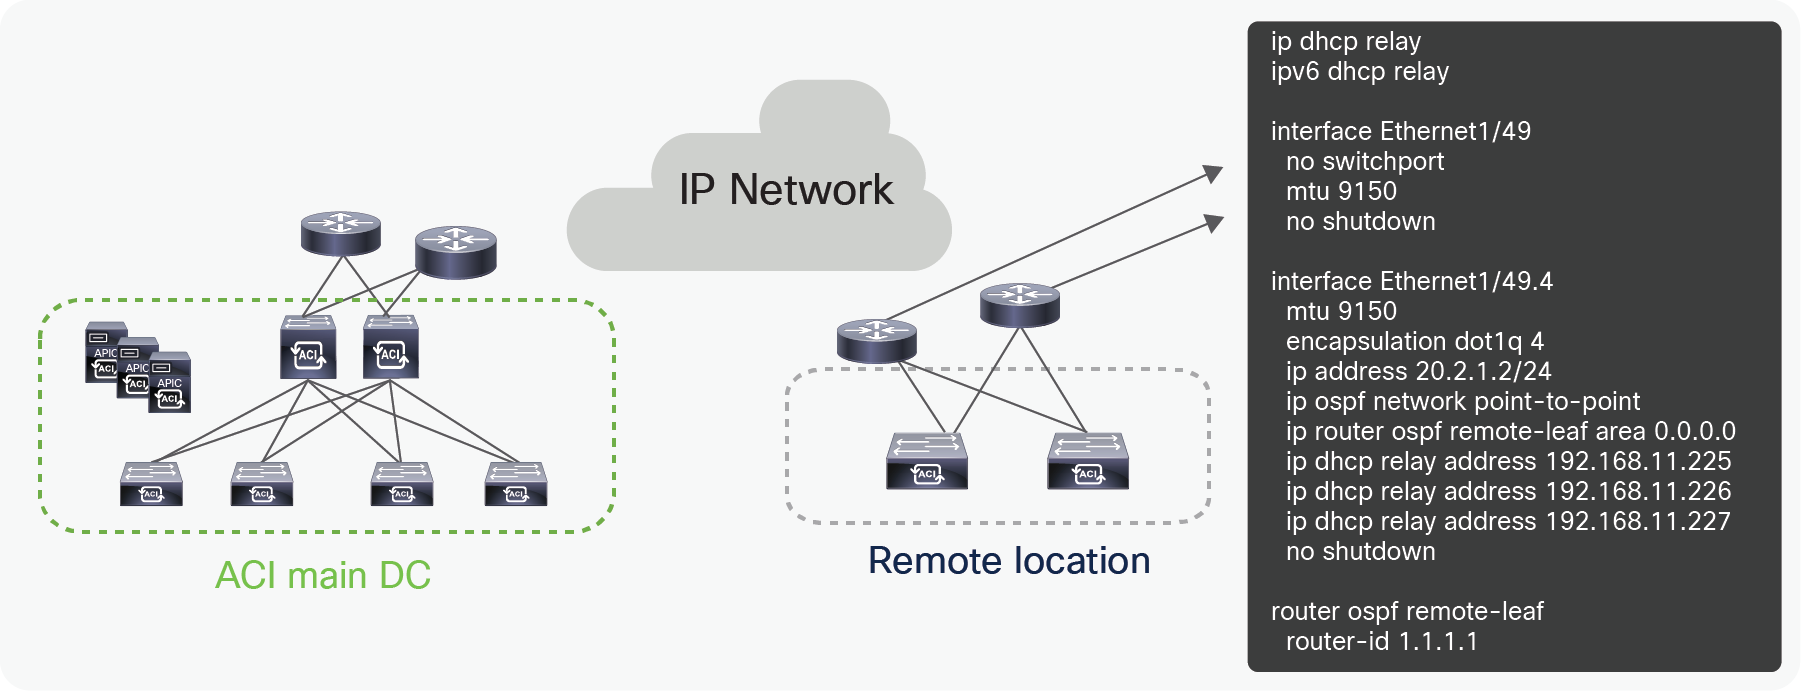 Title: Configuration for the upstream router connected to Remote leaf with a private VTEP pool